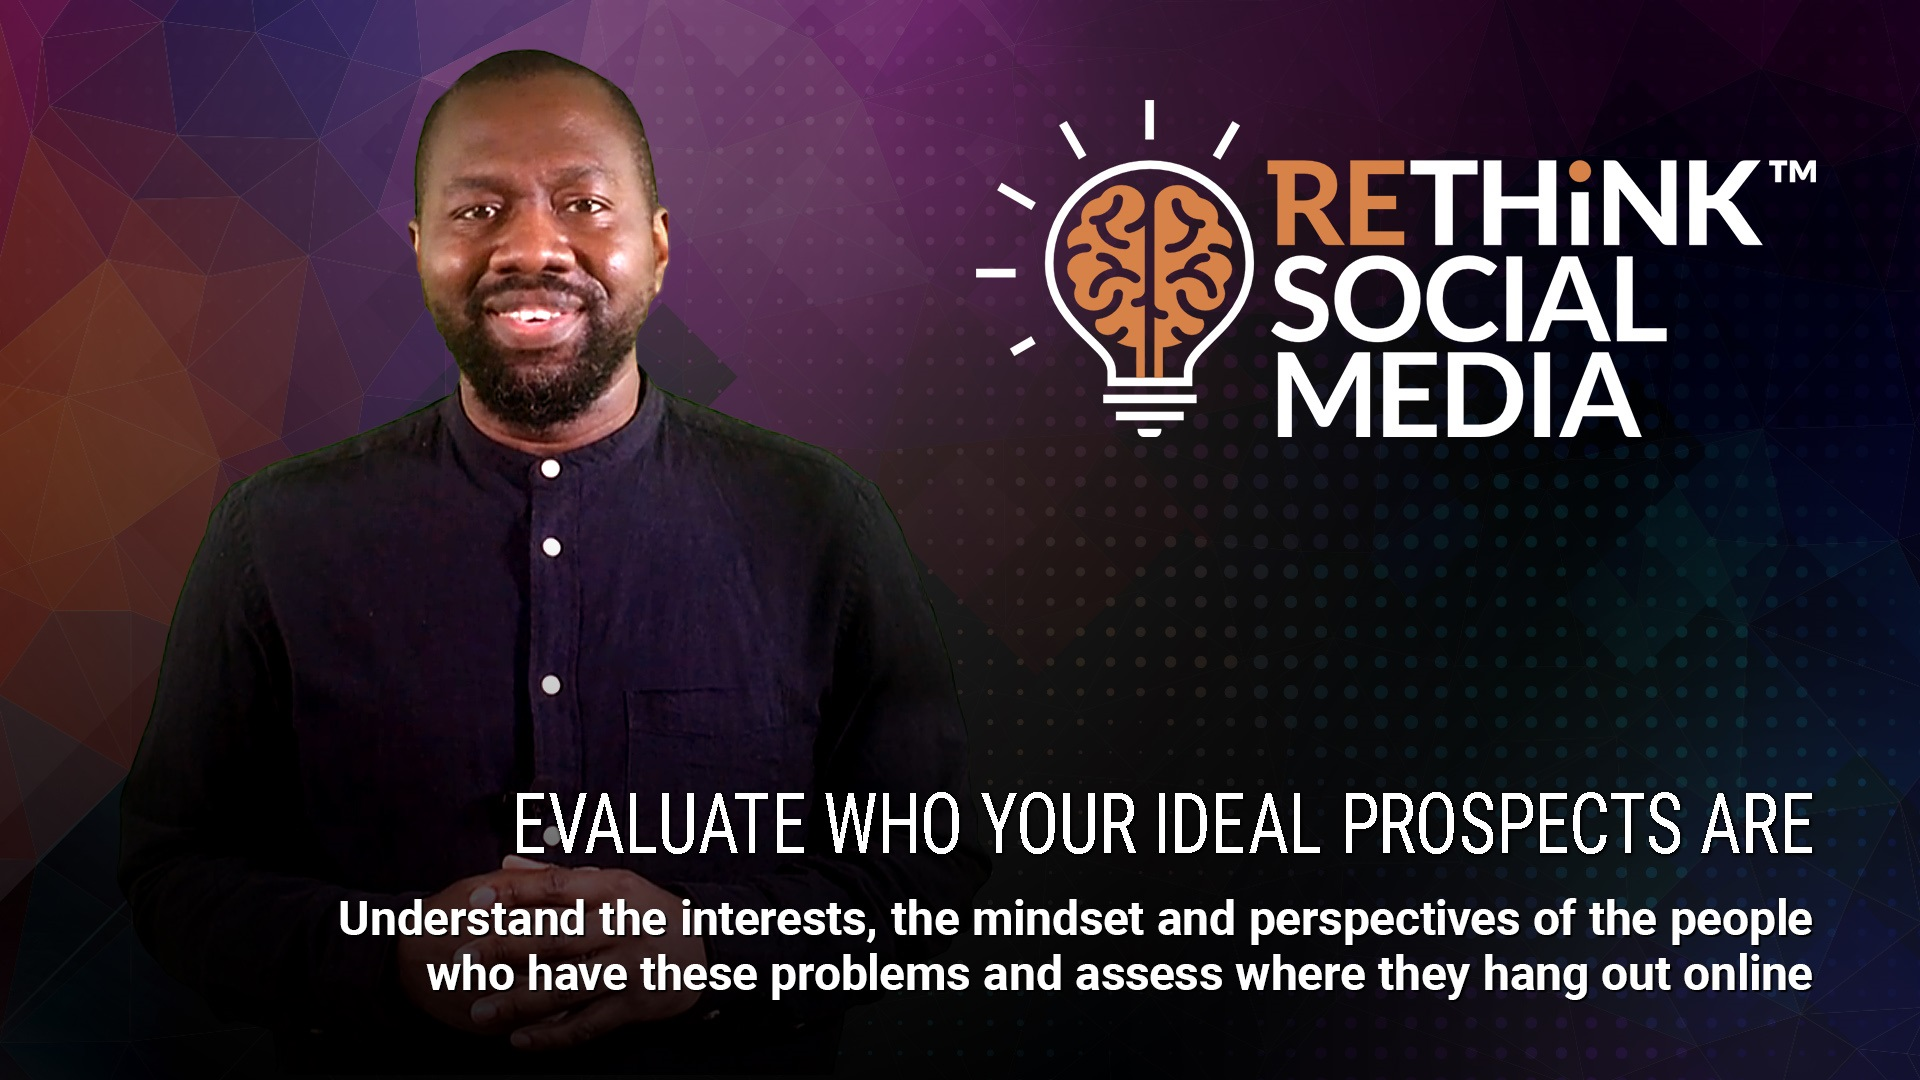 Episode 3 - Evaluate Who Your Ideal People Are with Robert Upright